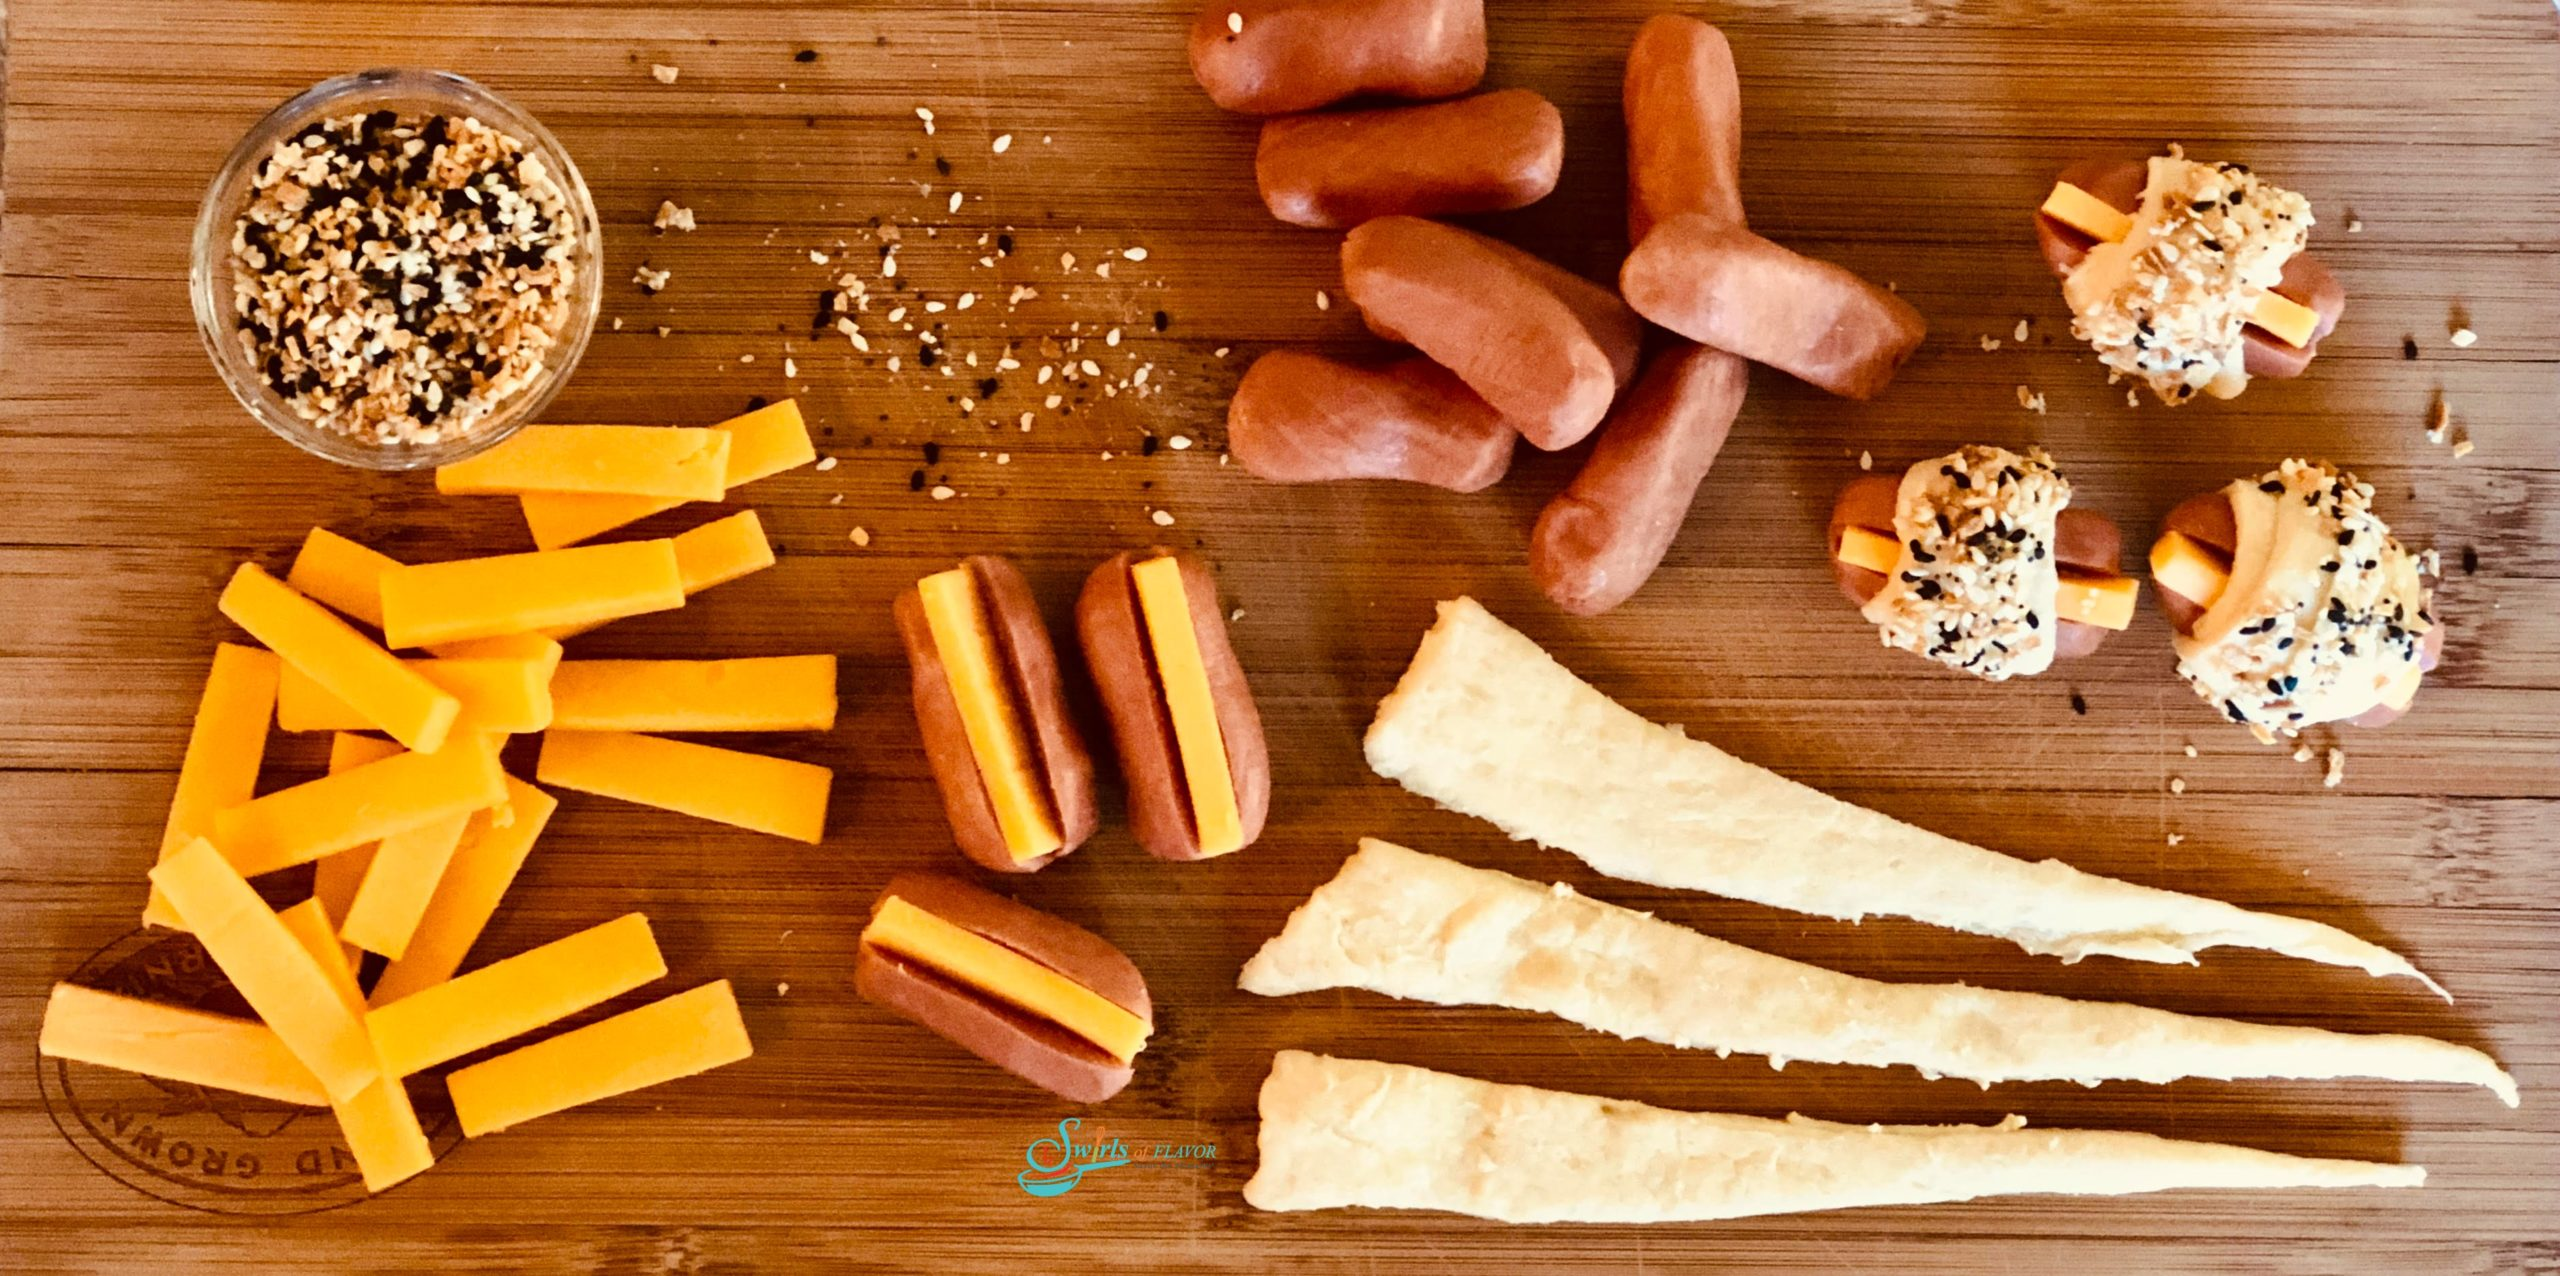 Ingredients for Cheese Dogs